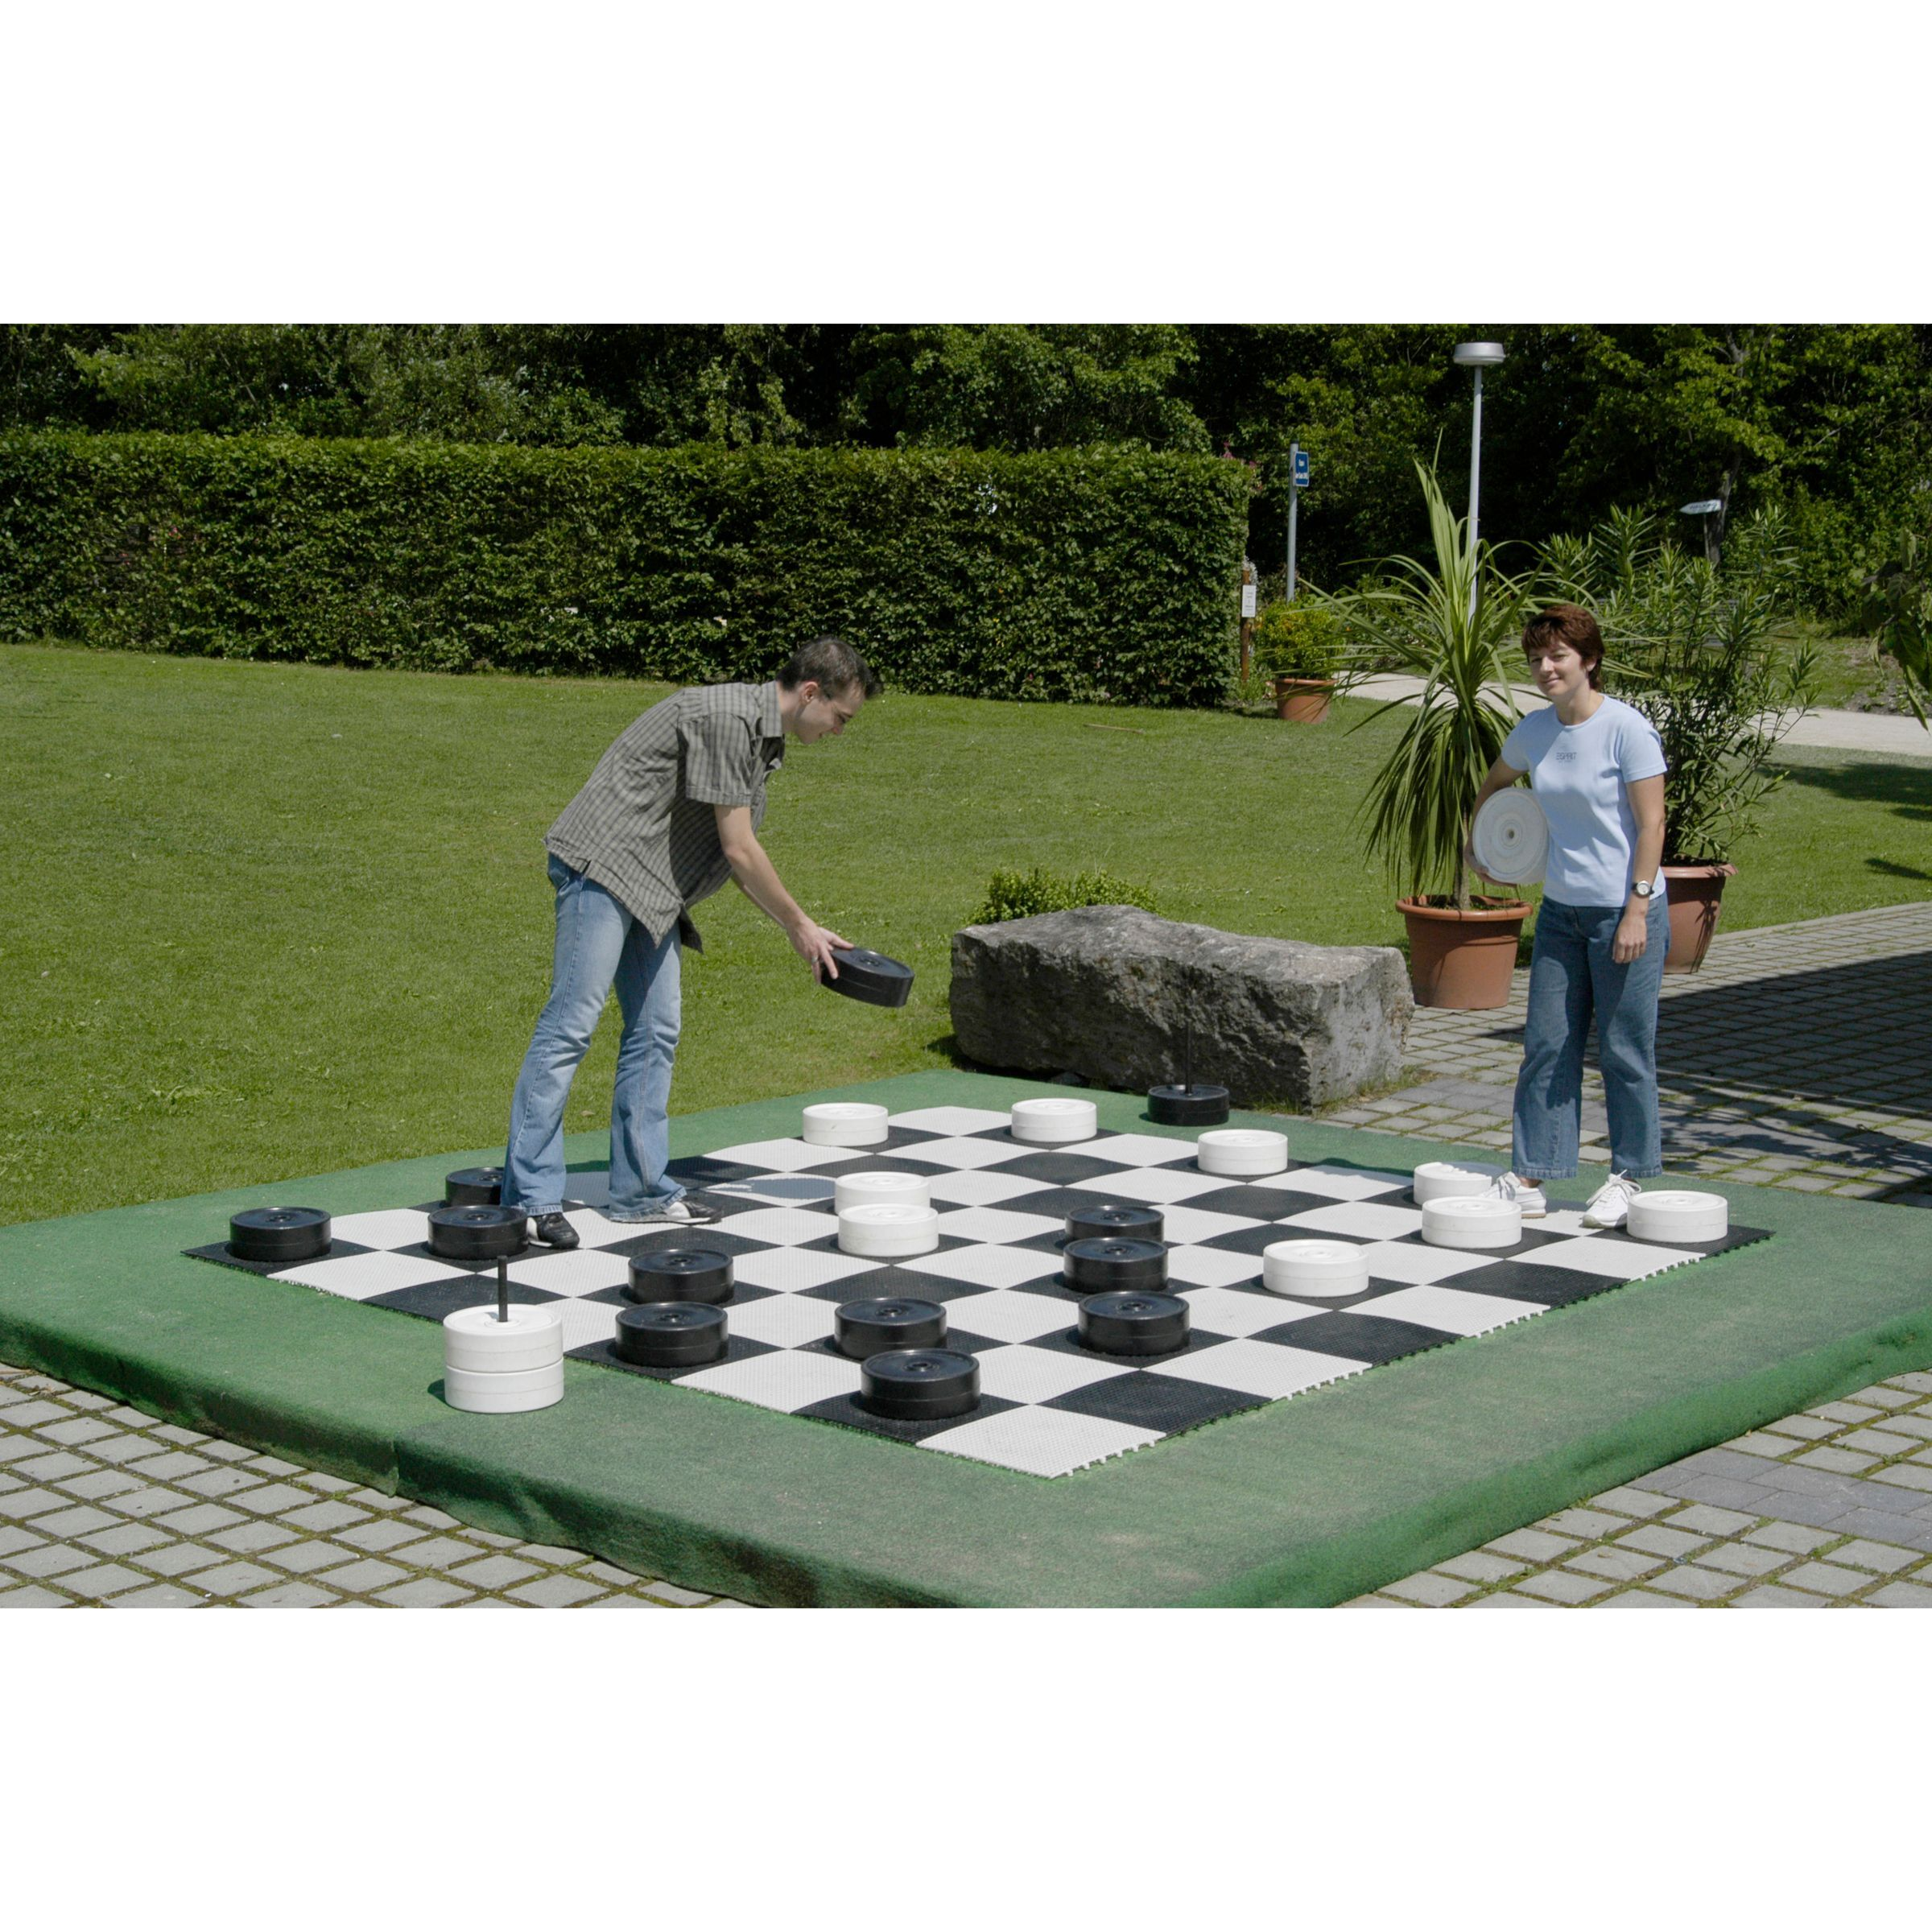 Sturdy yet lightweight and easy to assemble; perfect game for backyards, schools, recreation centers, country clubs, resorts, and campsdeal for indoor or outdoor play, constructed of tough all weather black and white resin,Checker/Chess pieces sold seperately